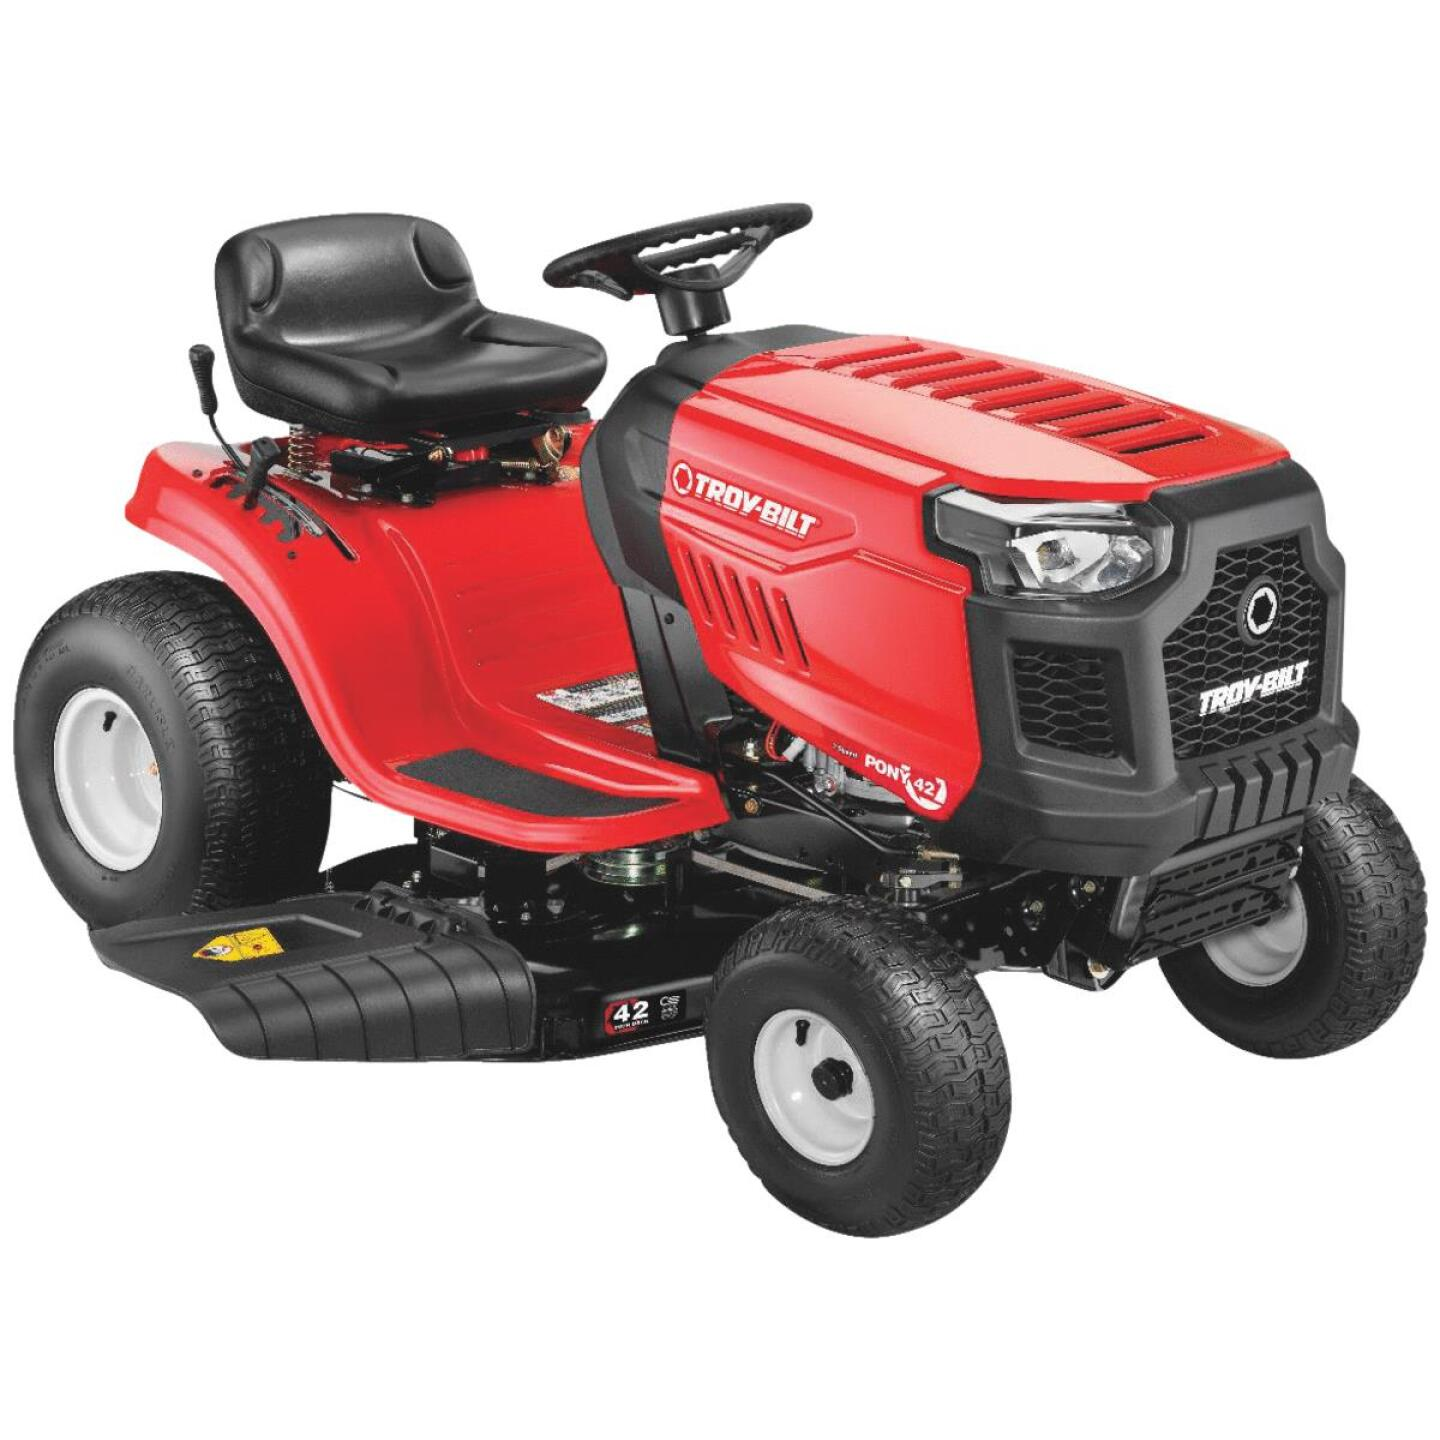 Troy-Bilt Pony 42 In. 500cc Single Cylinder Riding Lawn Tractor (California Compliant) Image 1